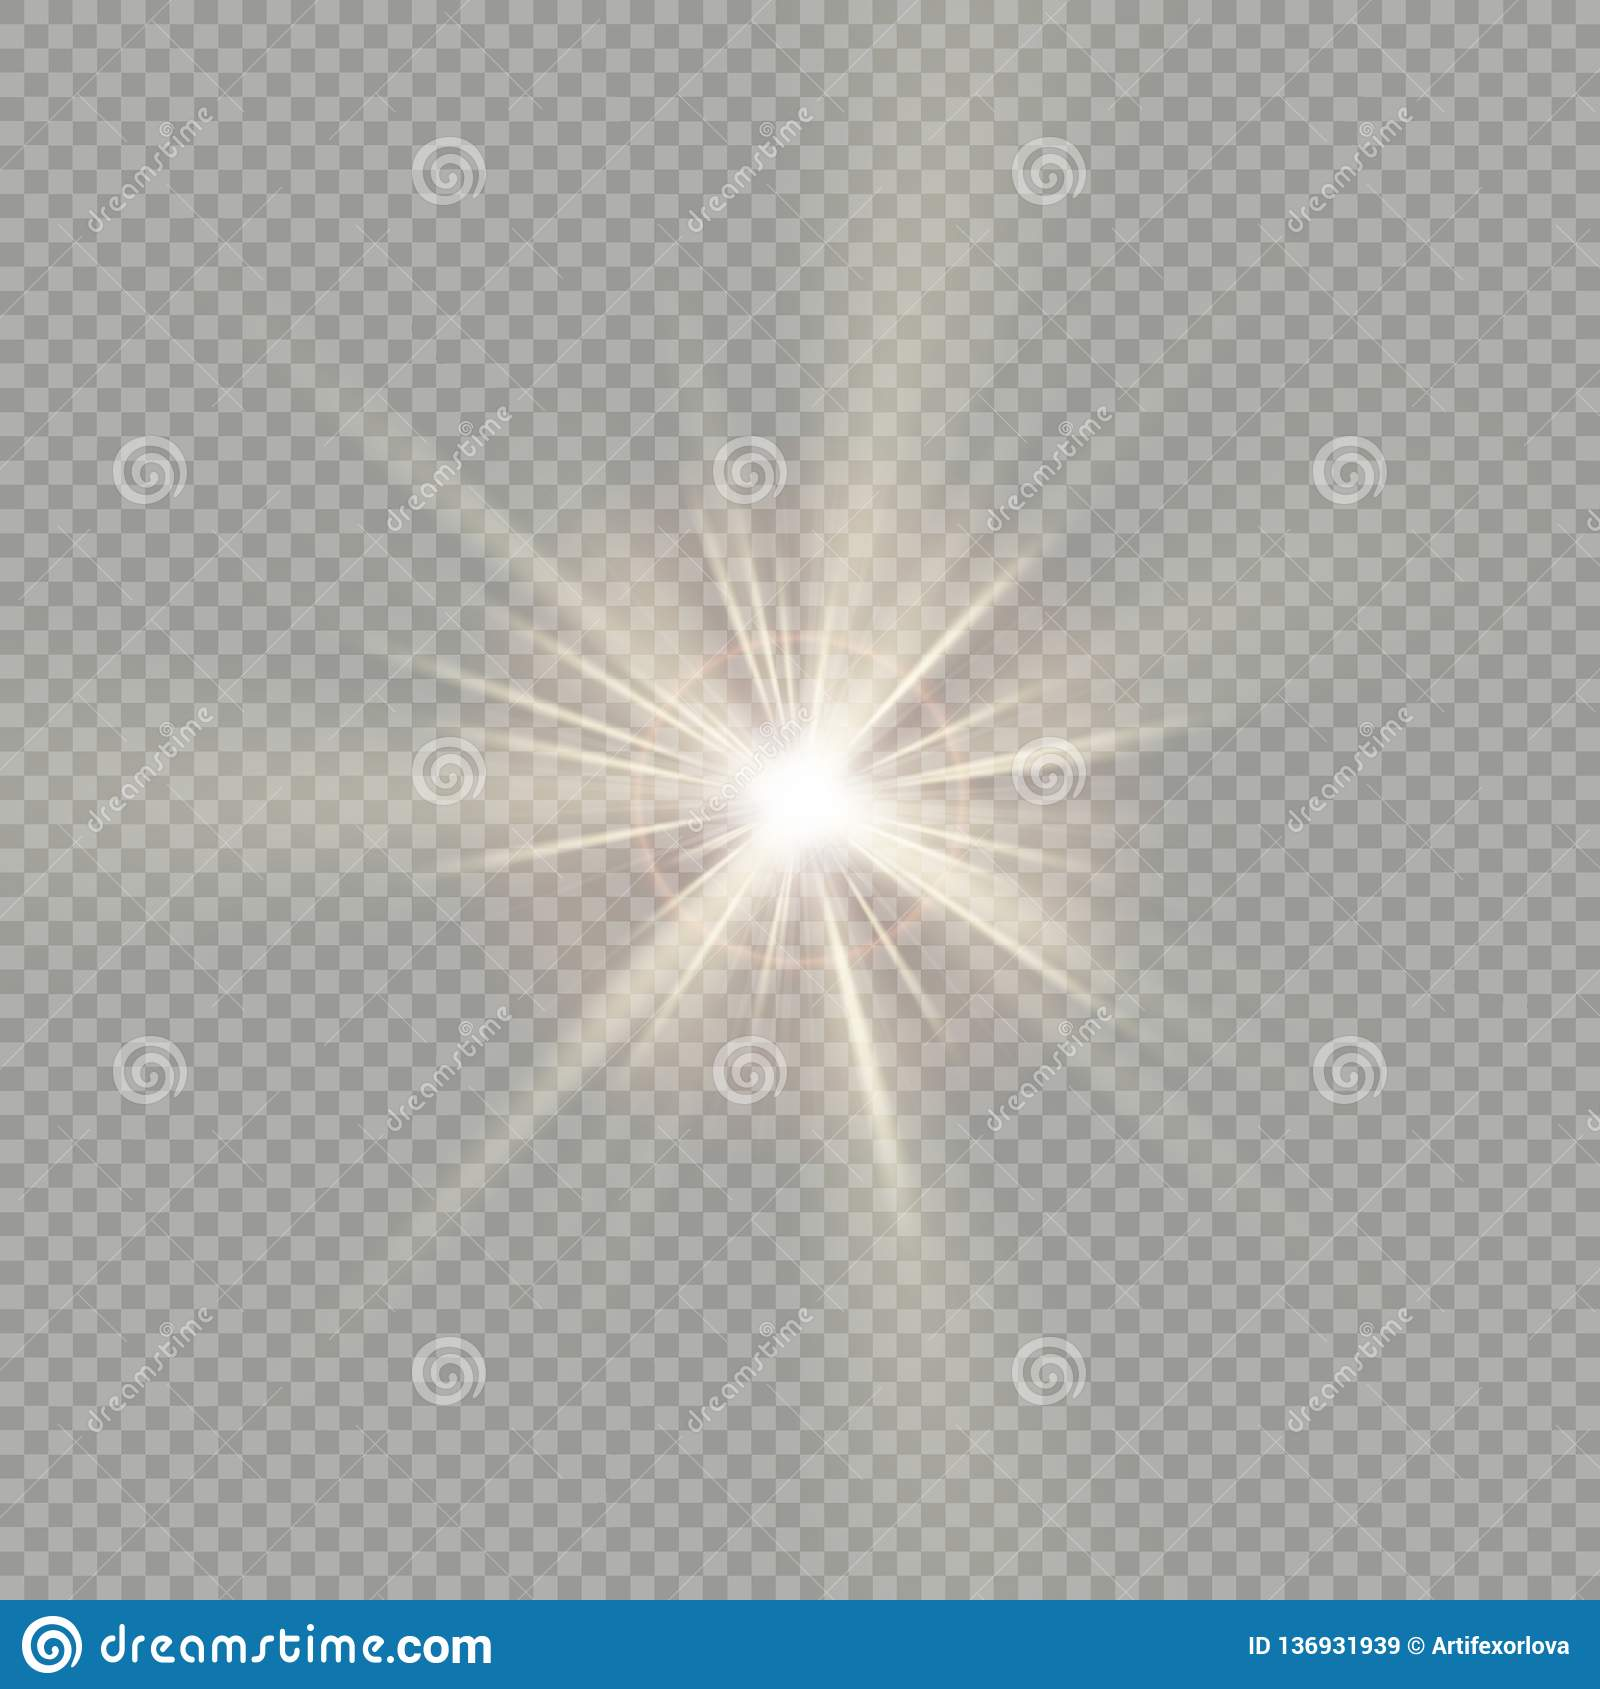 Easy to use. Effect of sunlight special lens flare light. EPS 10